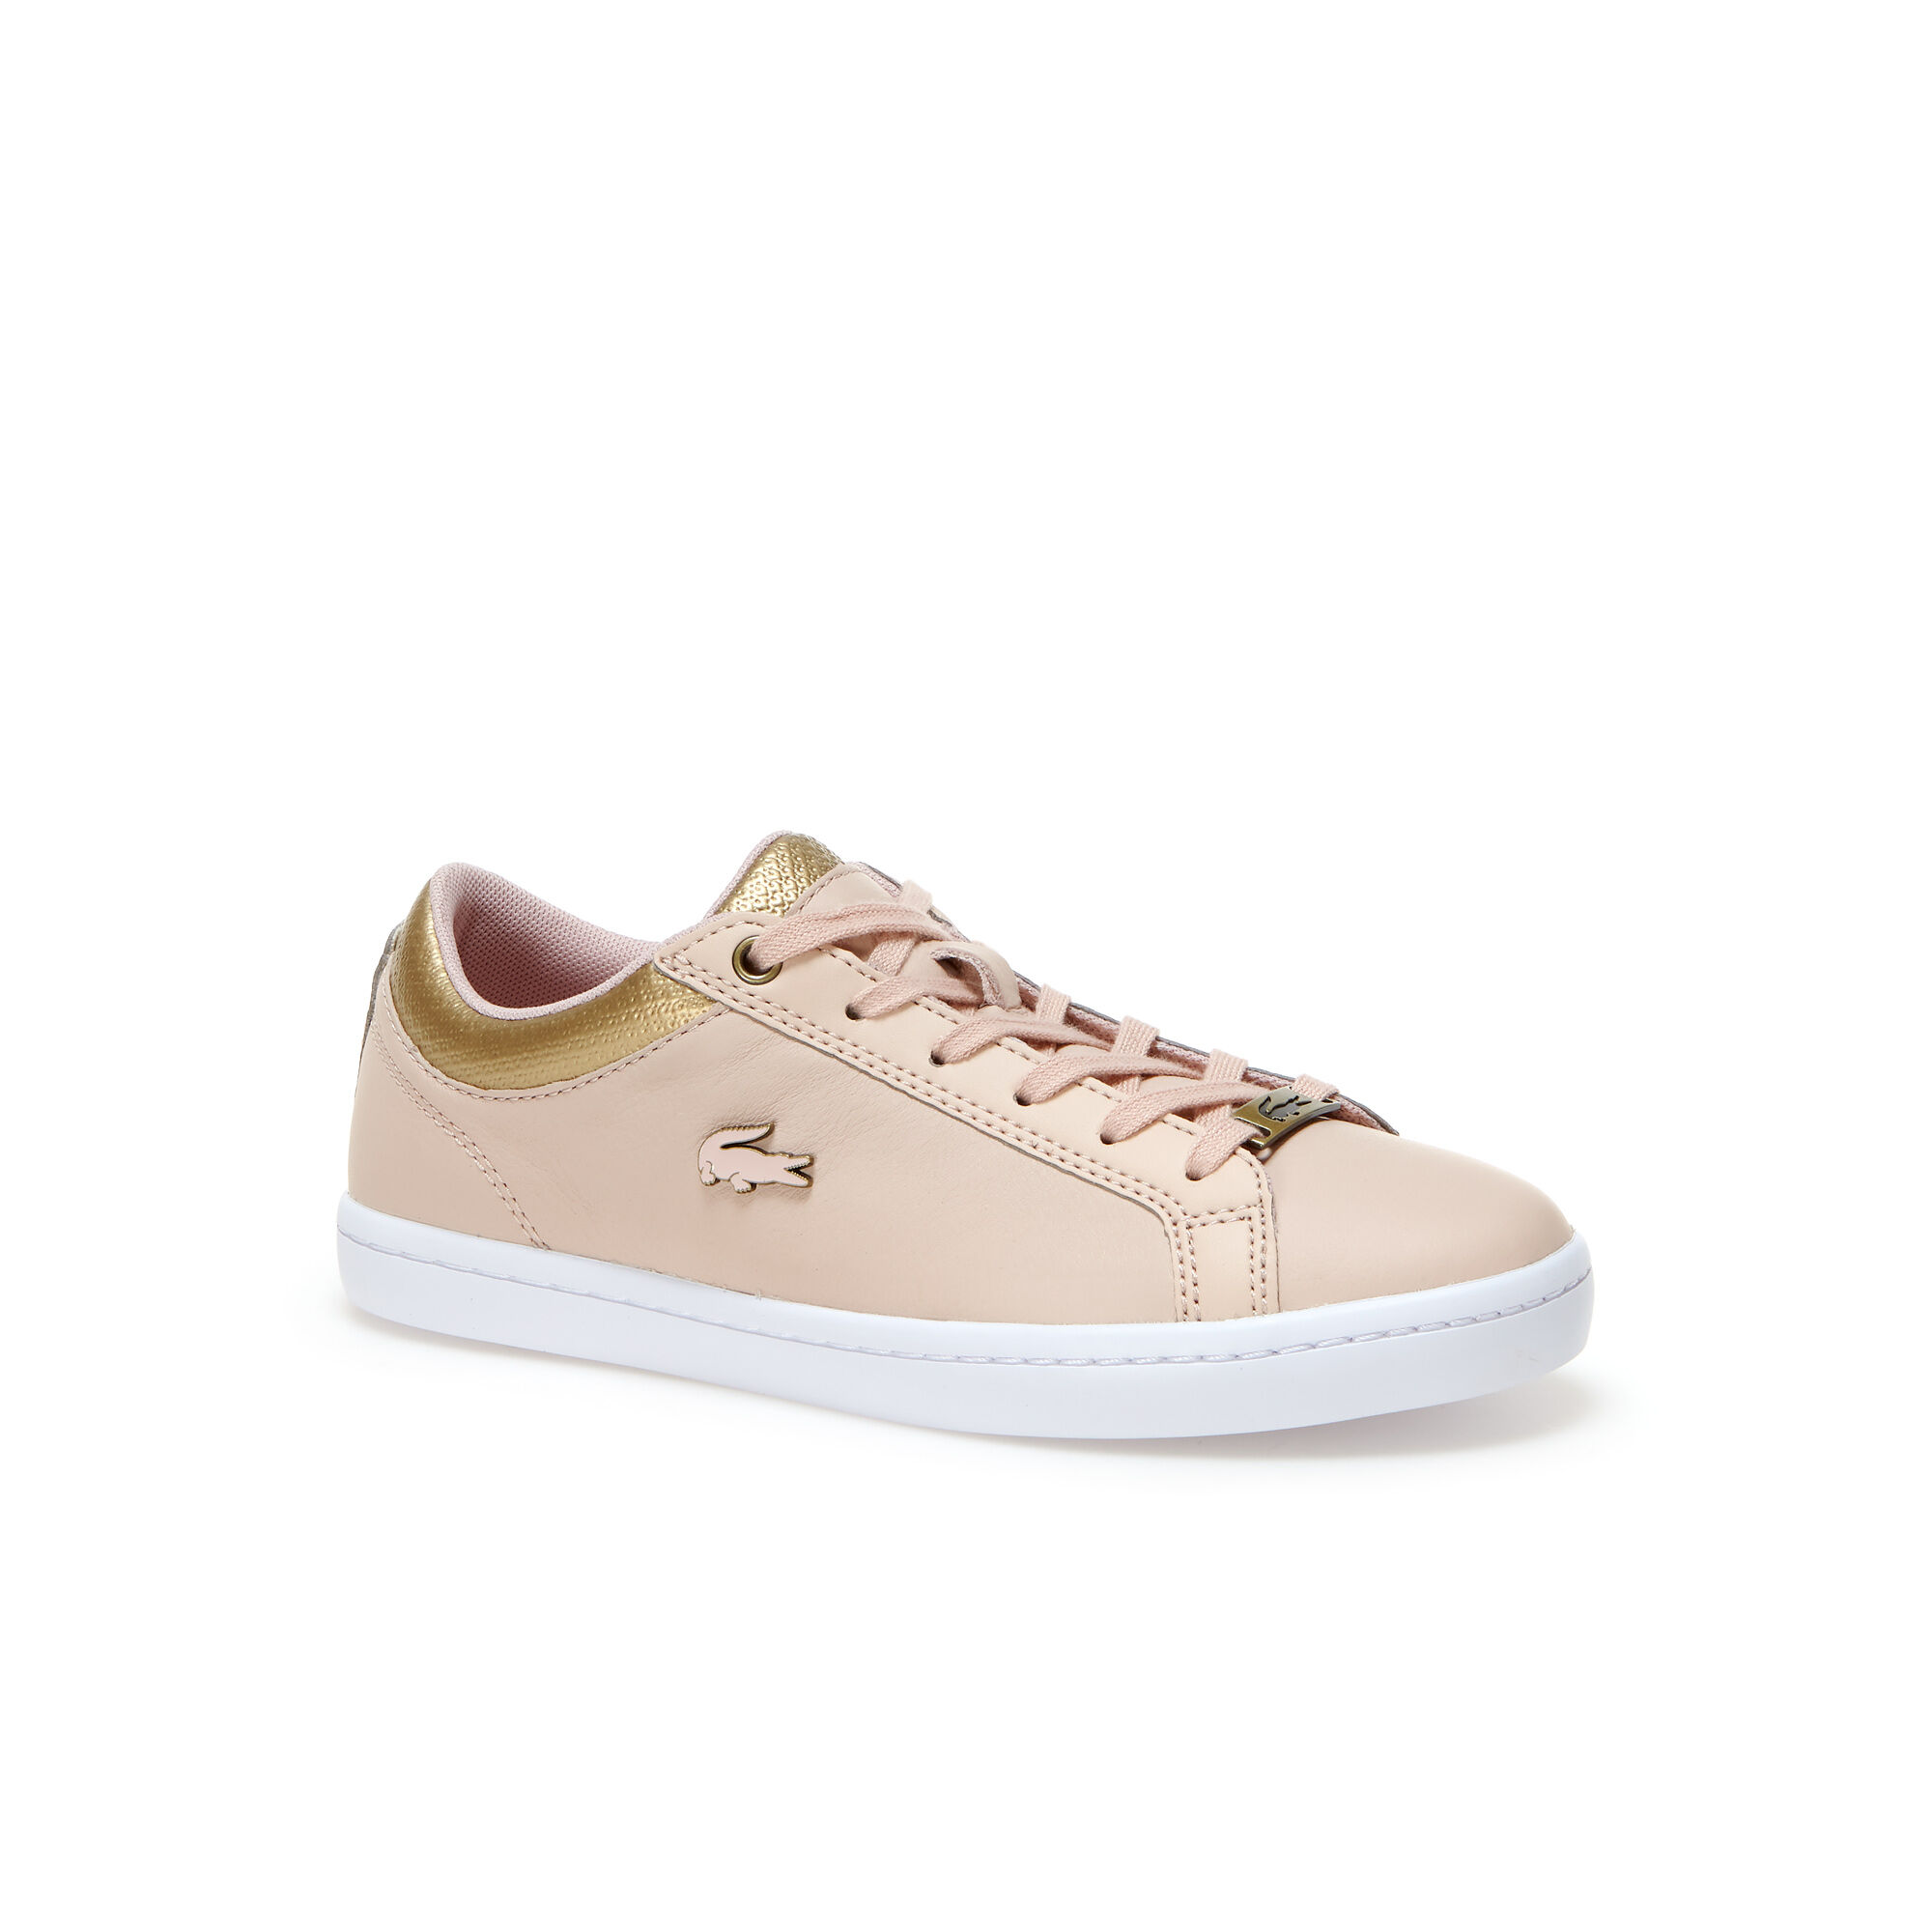 Lacoste Mens Court Line Trainers Burgundy/White/Tan Mens Trainers Burgundy/Blue/Brown/White LC915Cheap Sale100% top quality